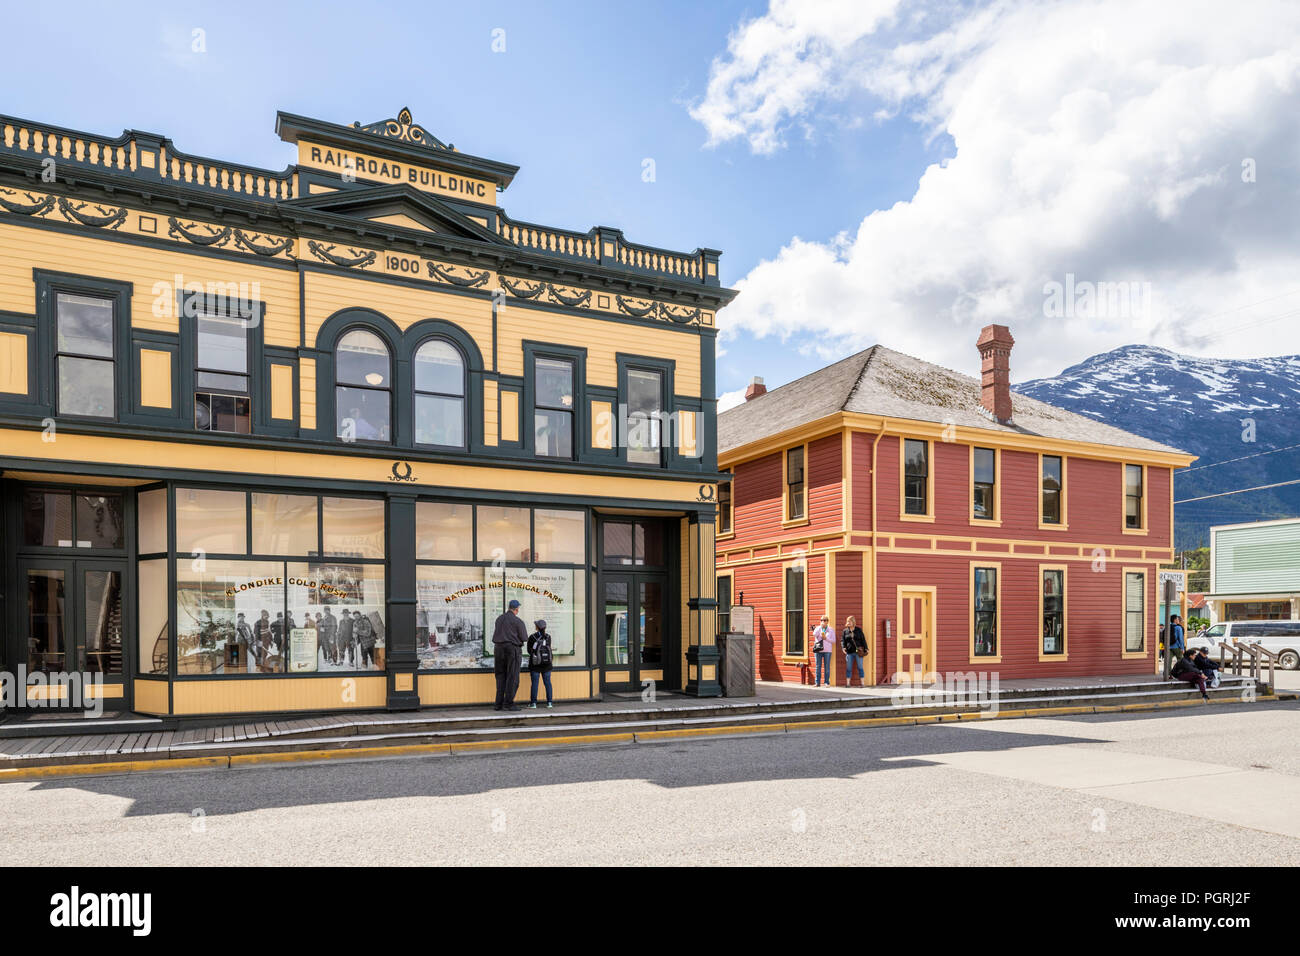 The Railroad Building of 1900 in the main street in Skagway, Alaska USA - Stock Image